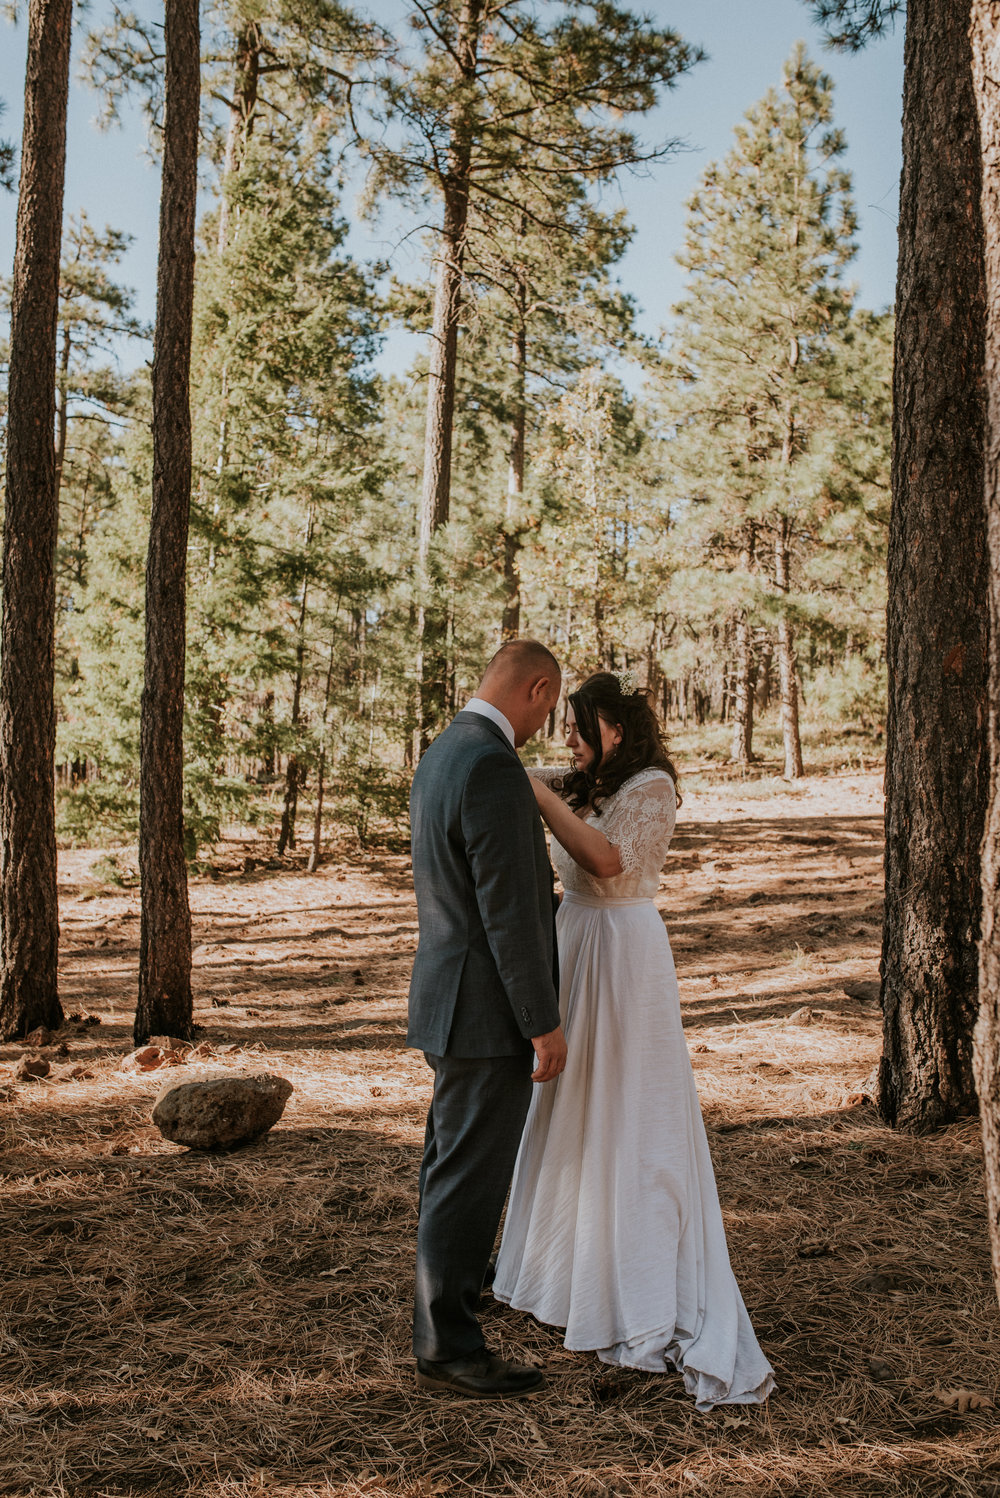 Intimate Adventure Fall Sedona Elopement-44.jpg